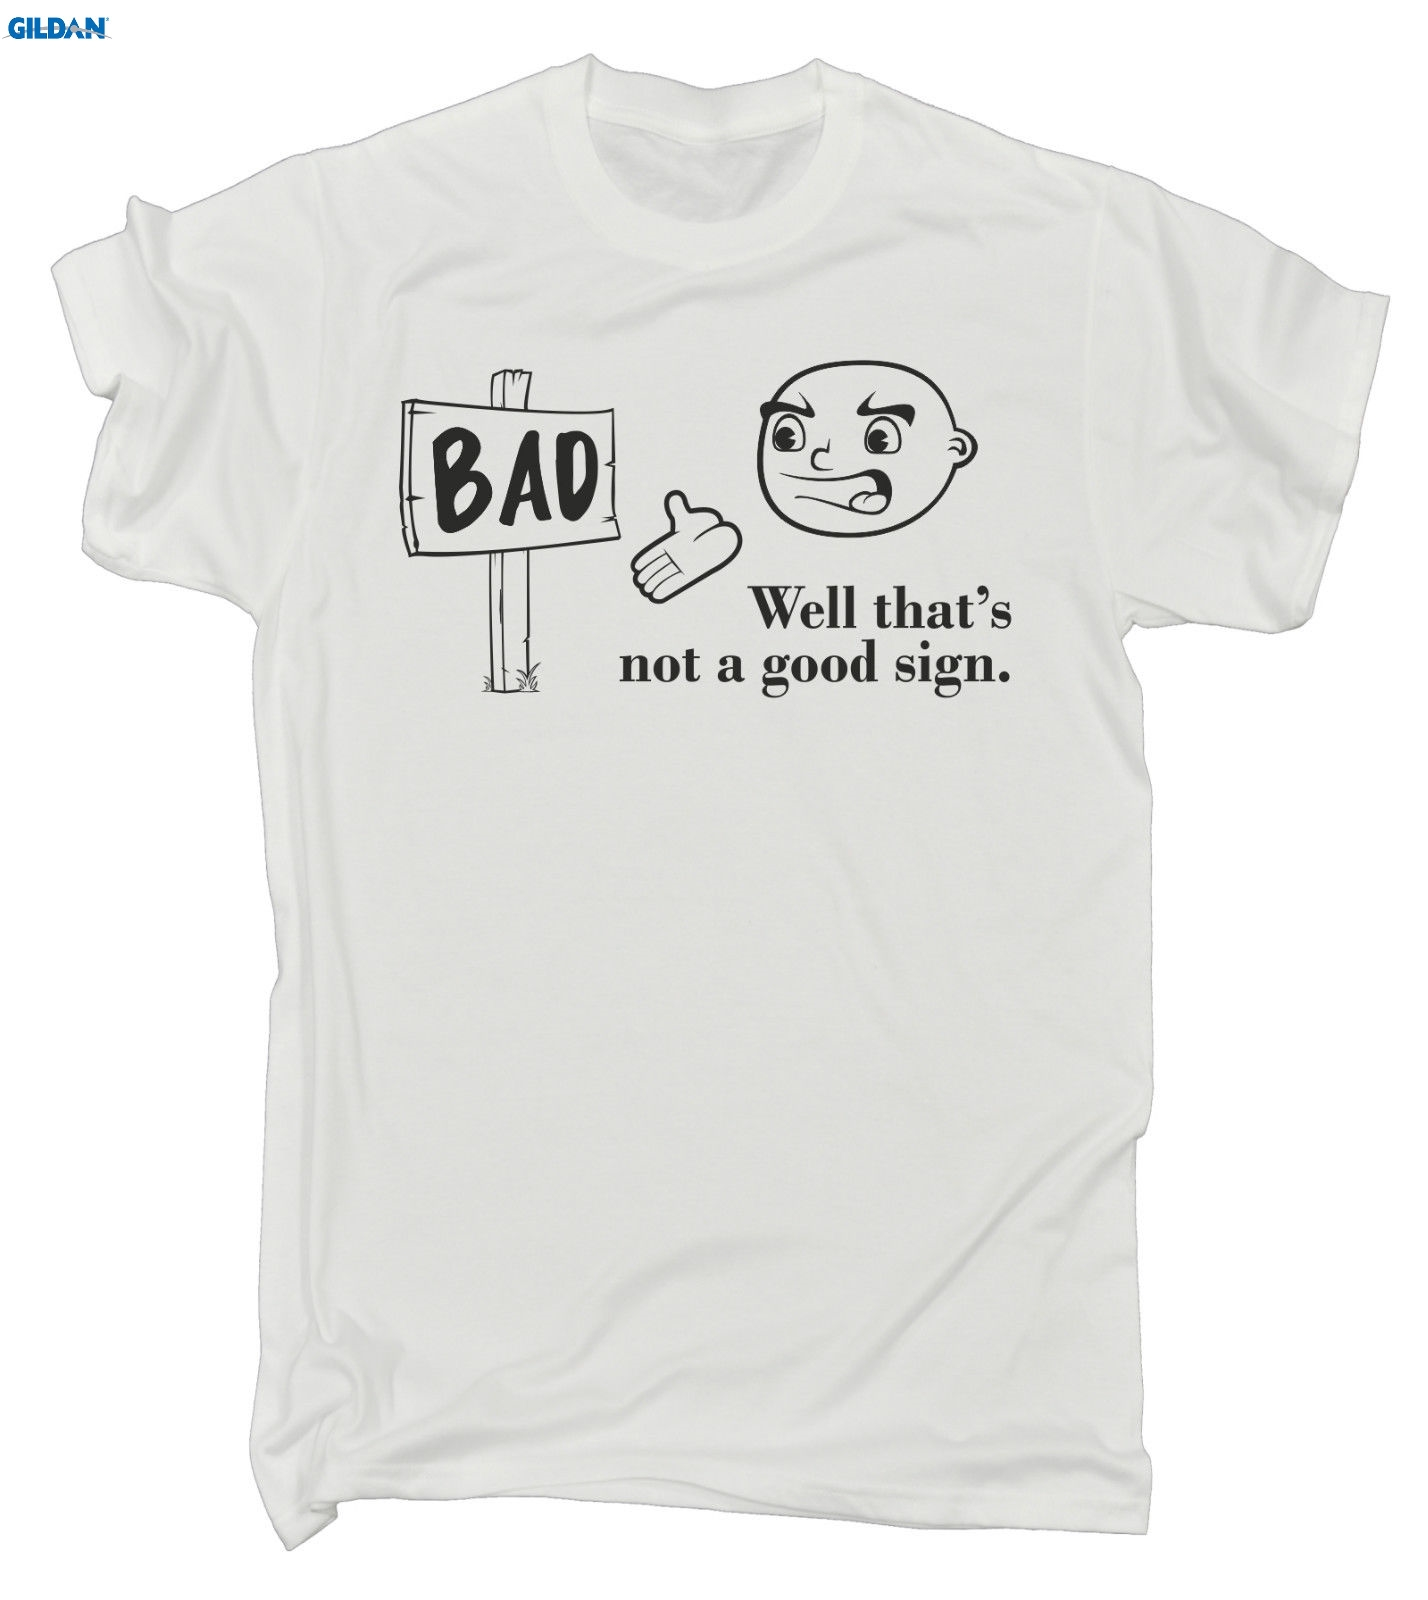 GILDAN BAD Well Thats Not A Good Sign T-SHIRT Joke Humour Funny Birthday Gift 123t Men Brand Printed 100% Cotton T Shirt